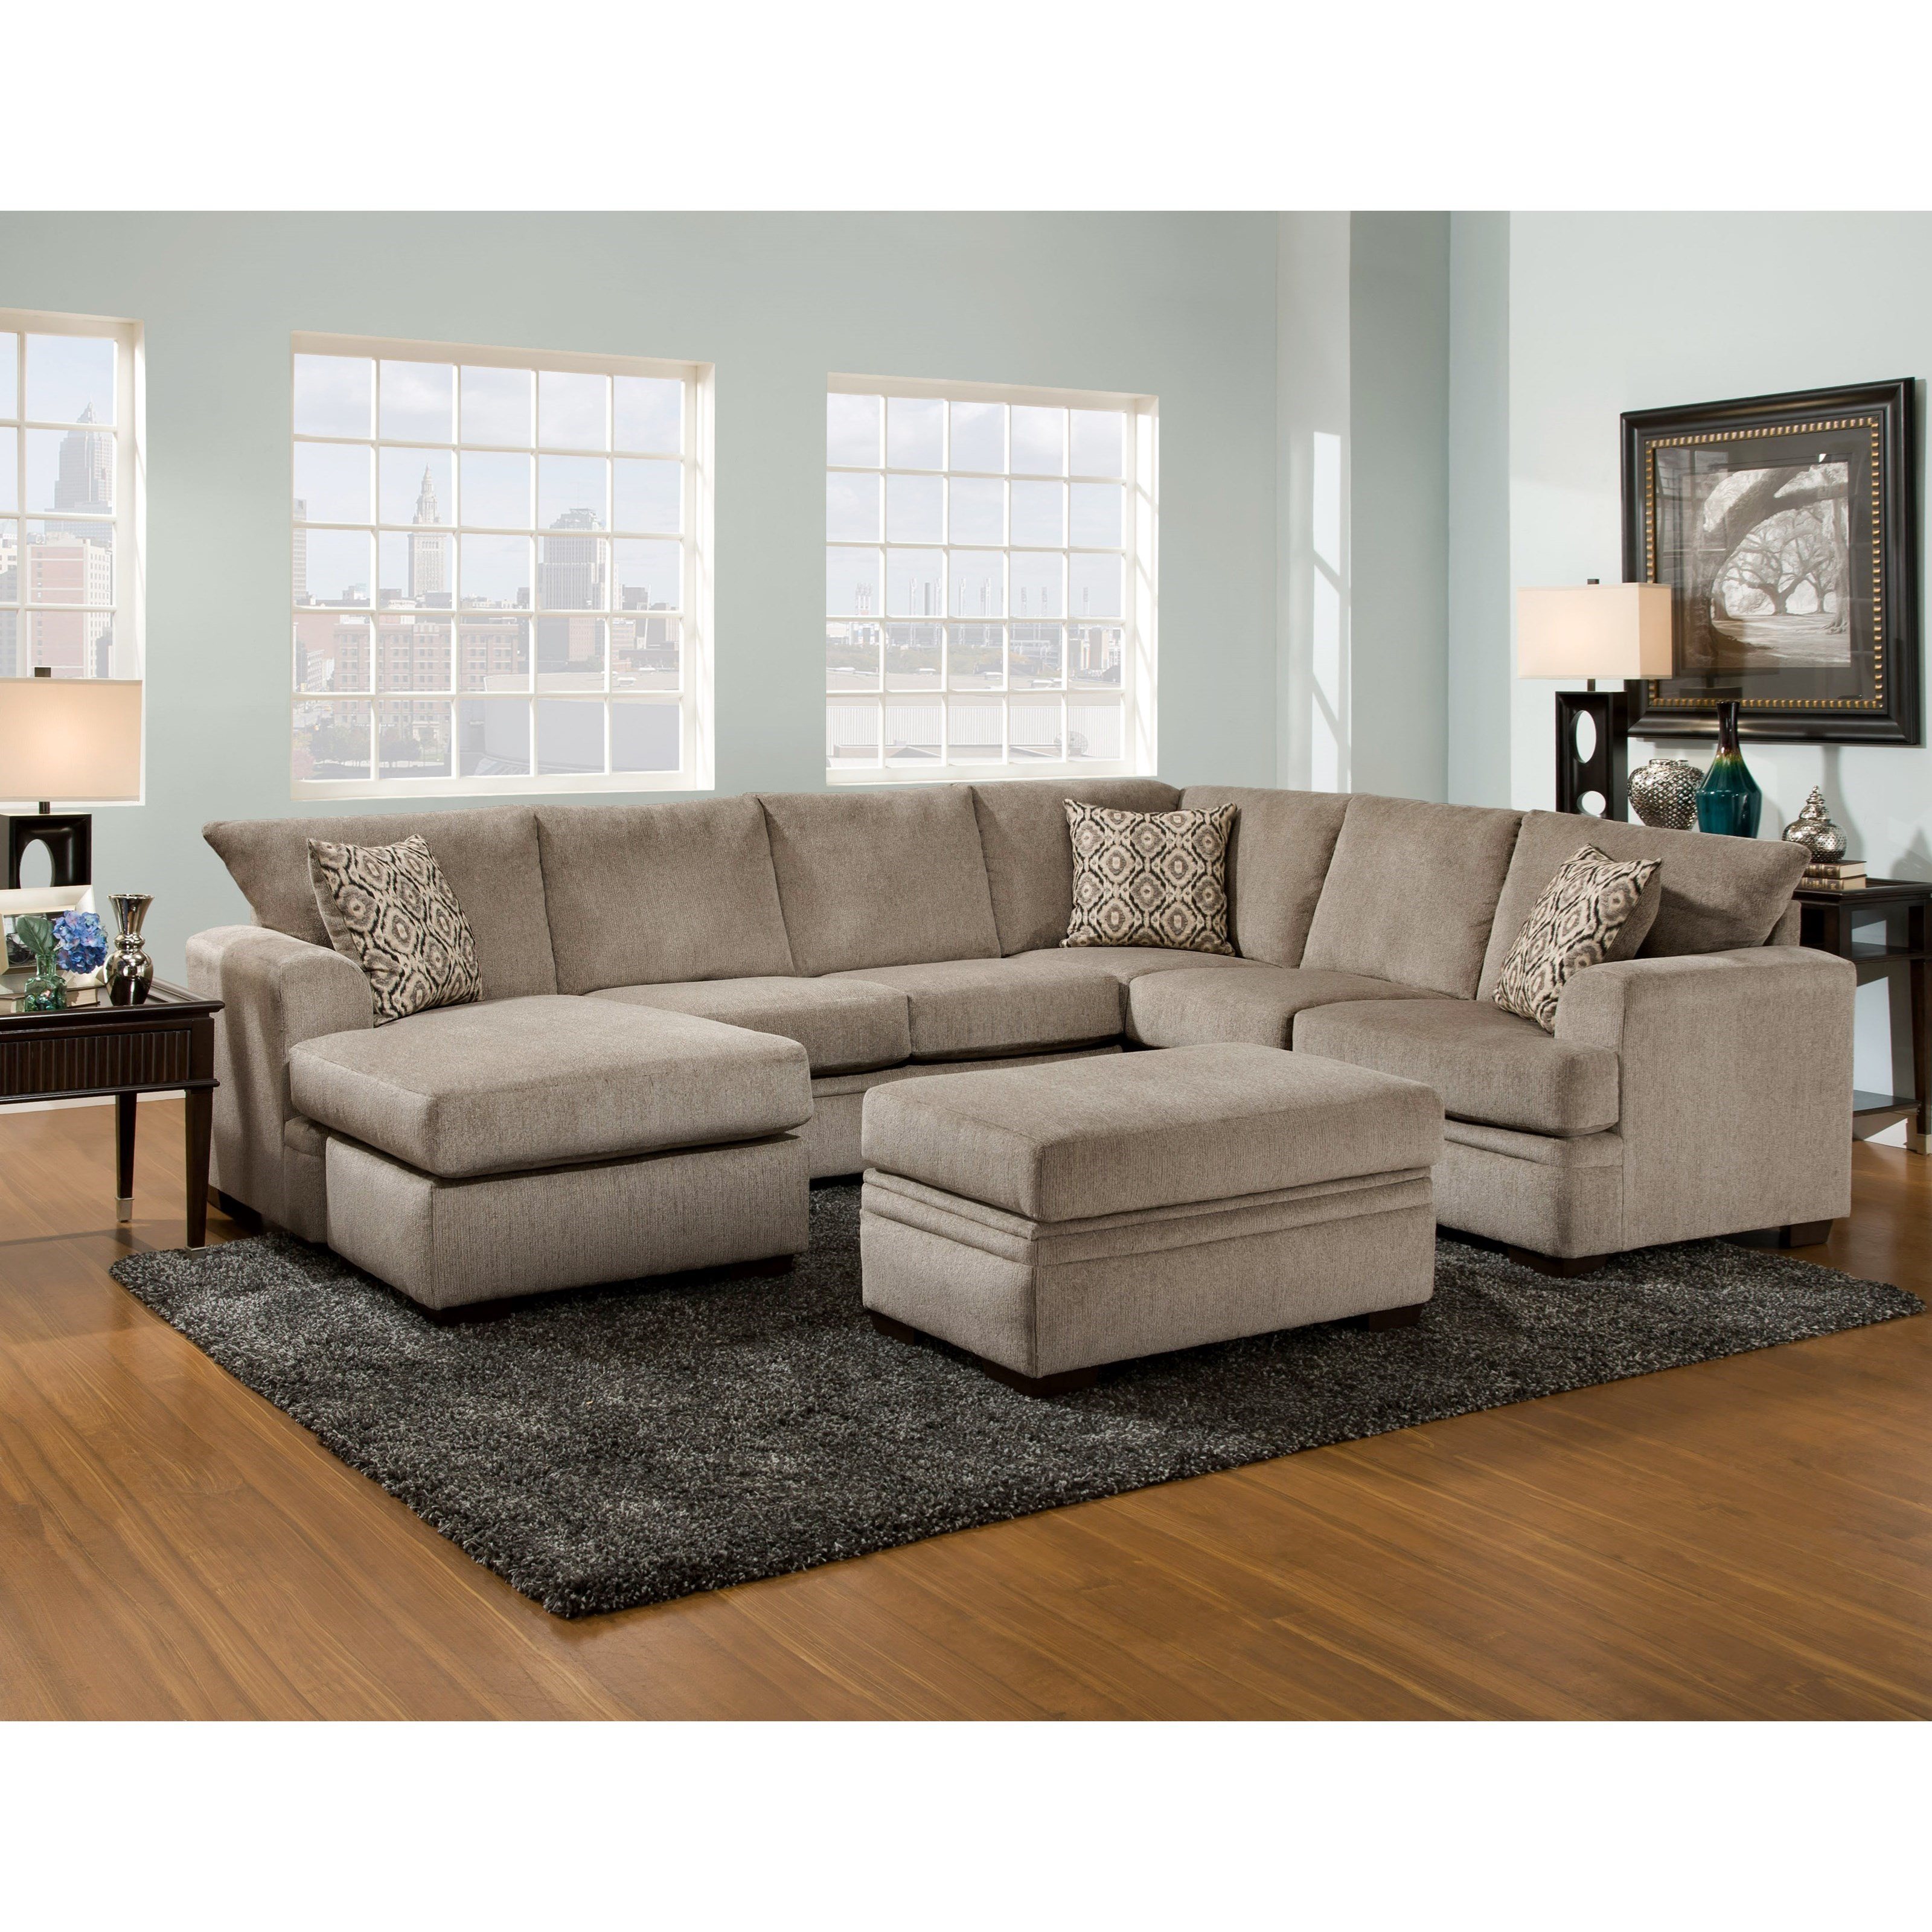 American Sofa Images 6800 Sectional Sofa With Left Side Chaise By American Furniture At Darvin Furniture